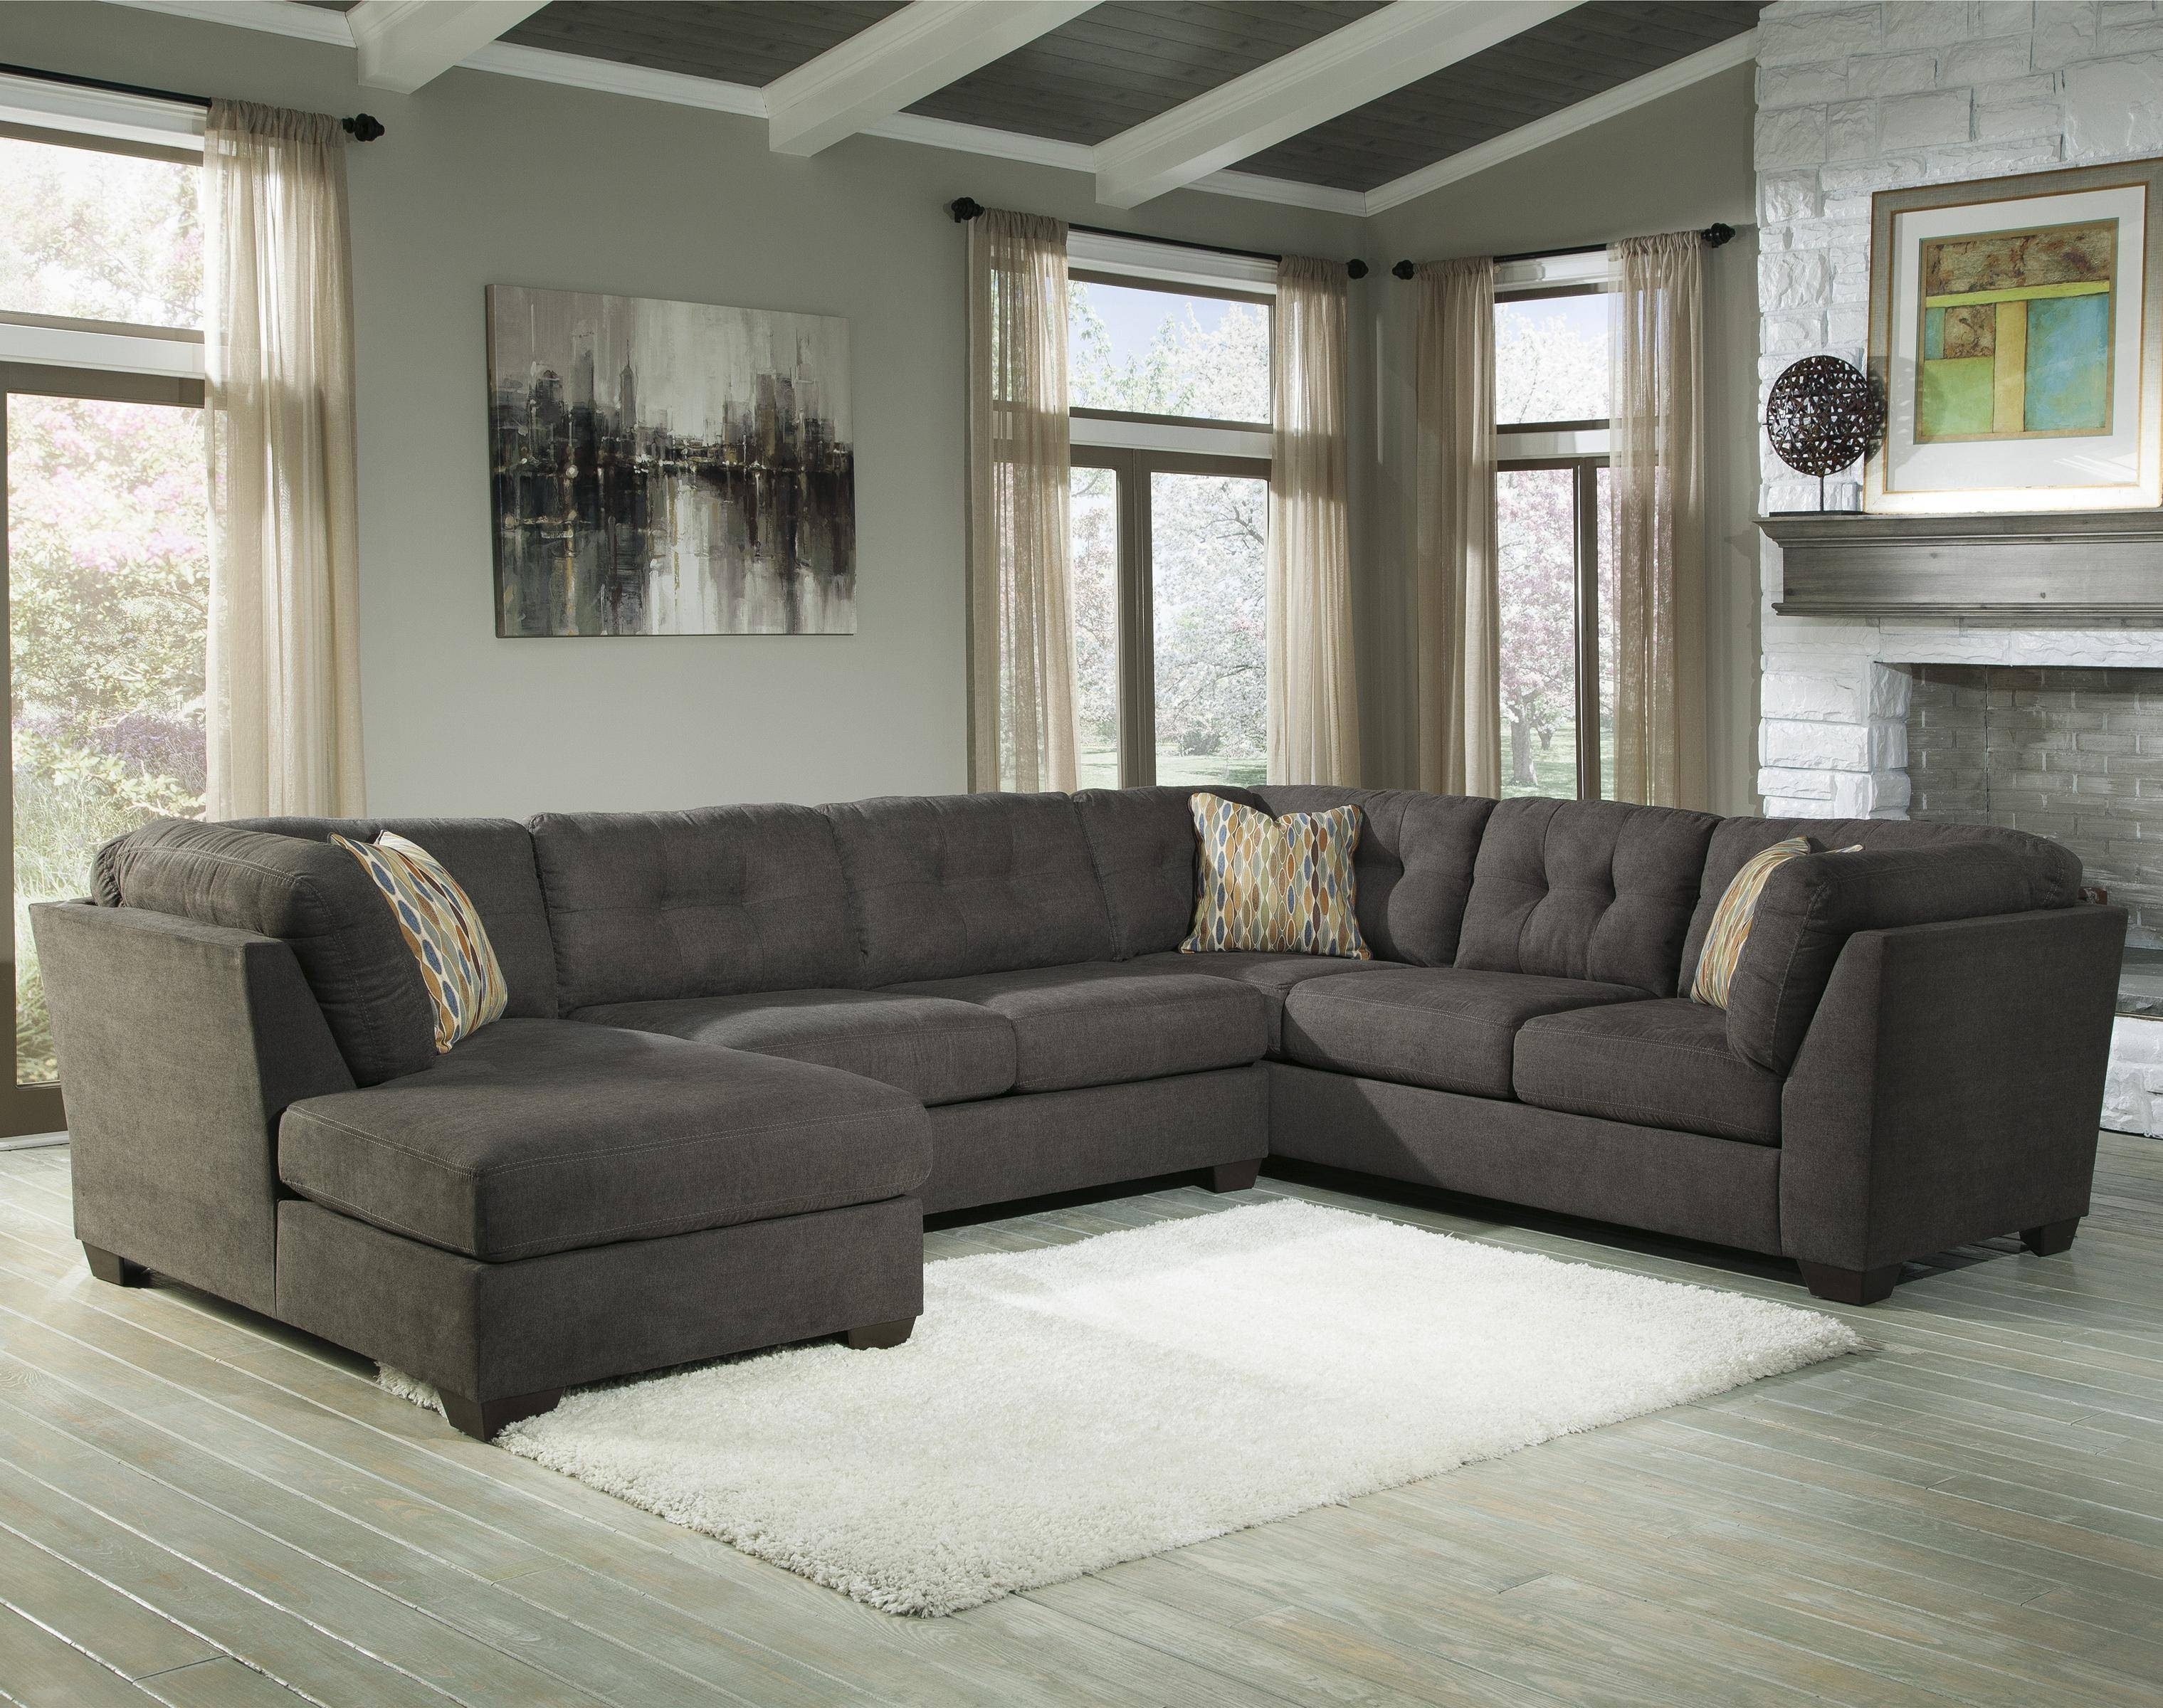 Sectional Sleeper Sofa Extraordinary Home Design Inside 3 Piece Sectional Sleeper Sofa (View 22 of 30)